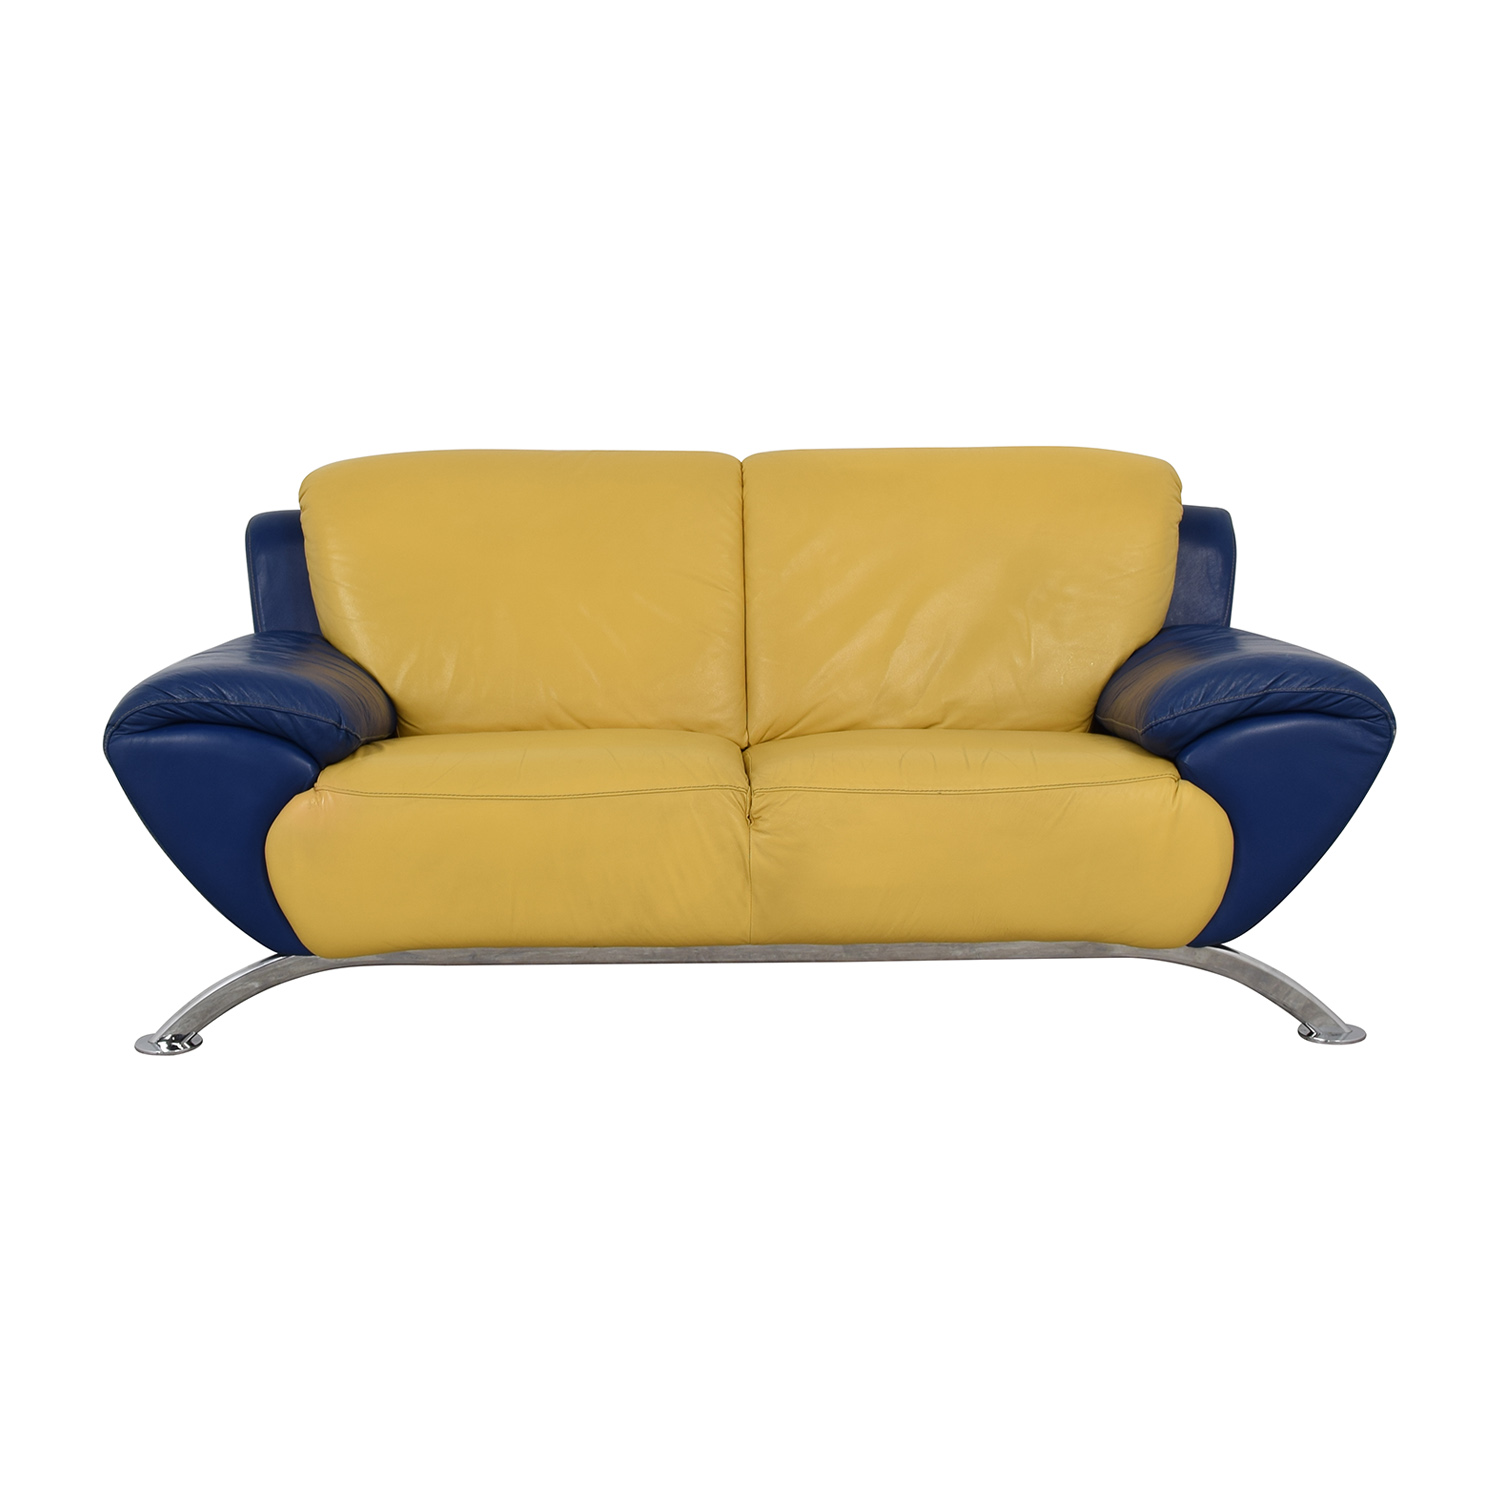 88 Off Satis Satis Modern Yellow And Blue Leather Two Cushion Sofa Sofas